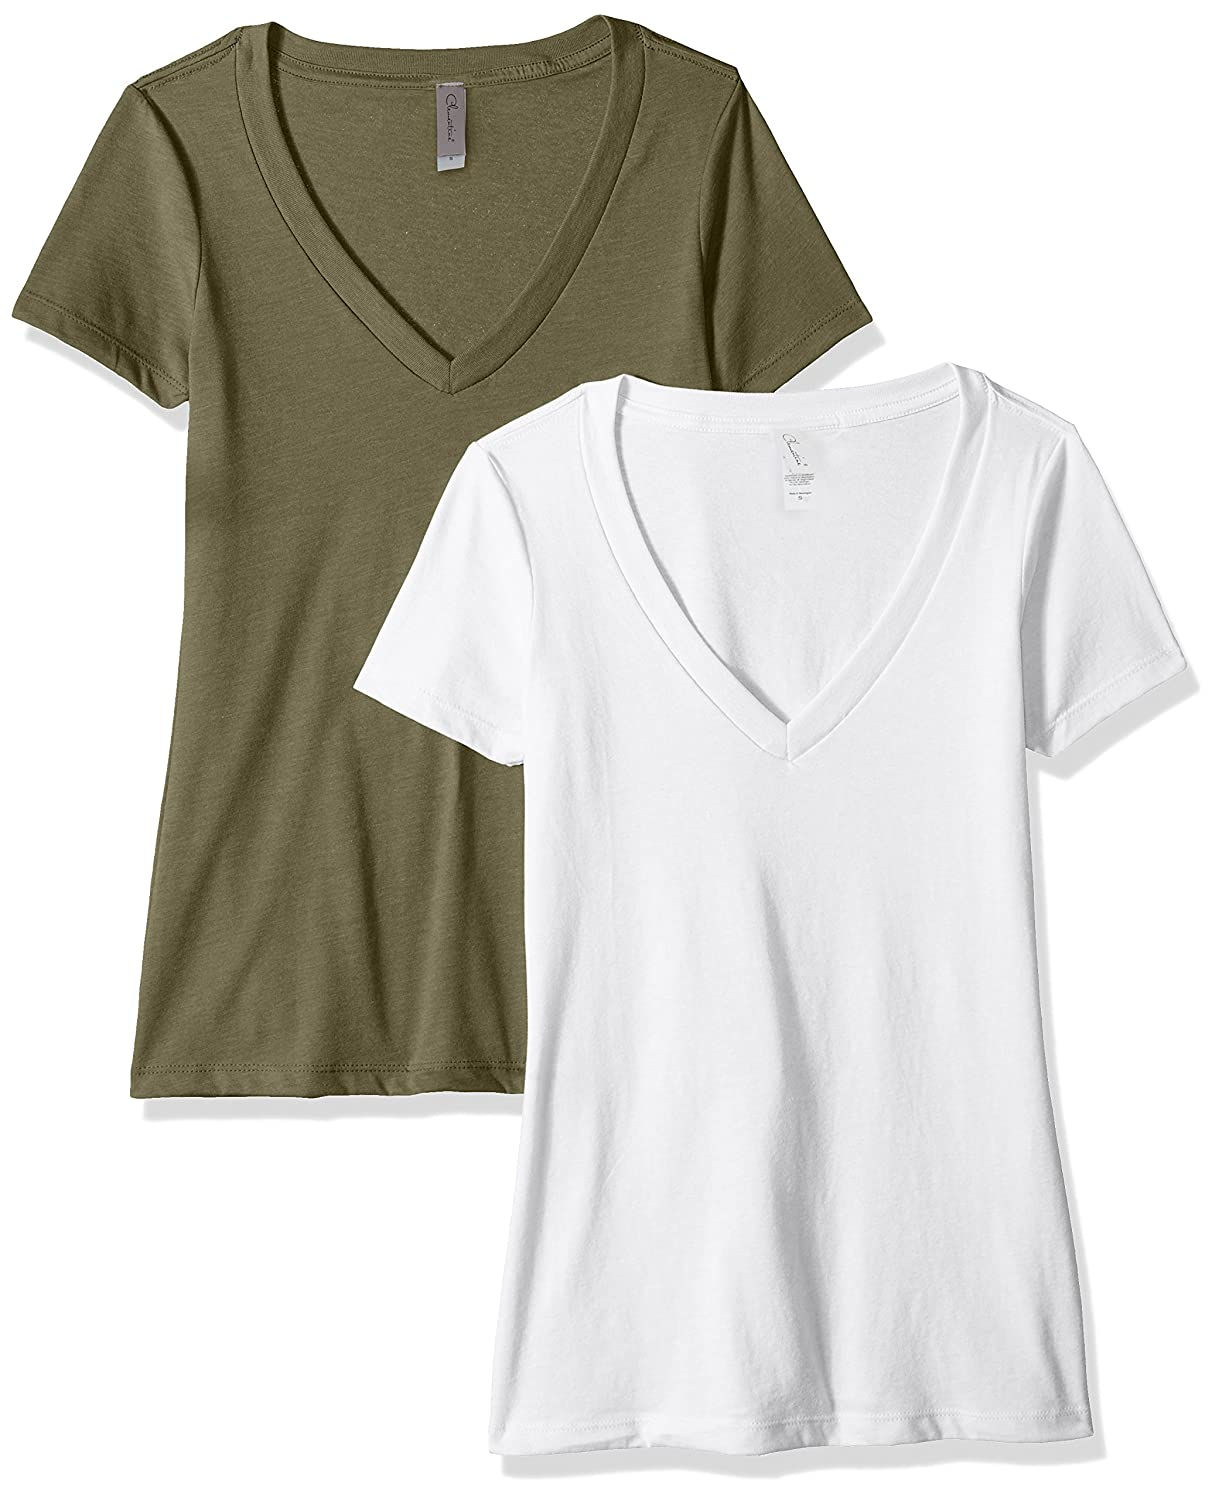 Clementine Apparel Women's Casual T Shirt Comfy Short Sleeve Pull Over Basic V Neck Top Tee 2PK (6640) Clementine Womens Child Code 2-CLM6640